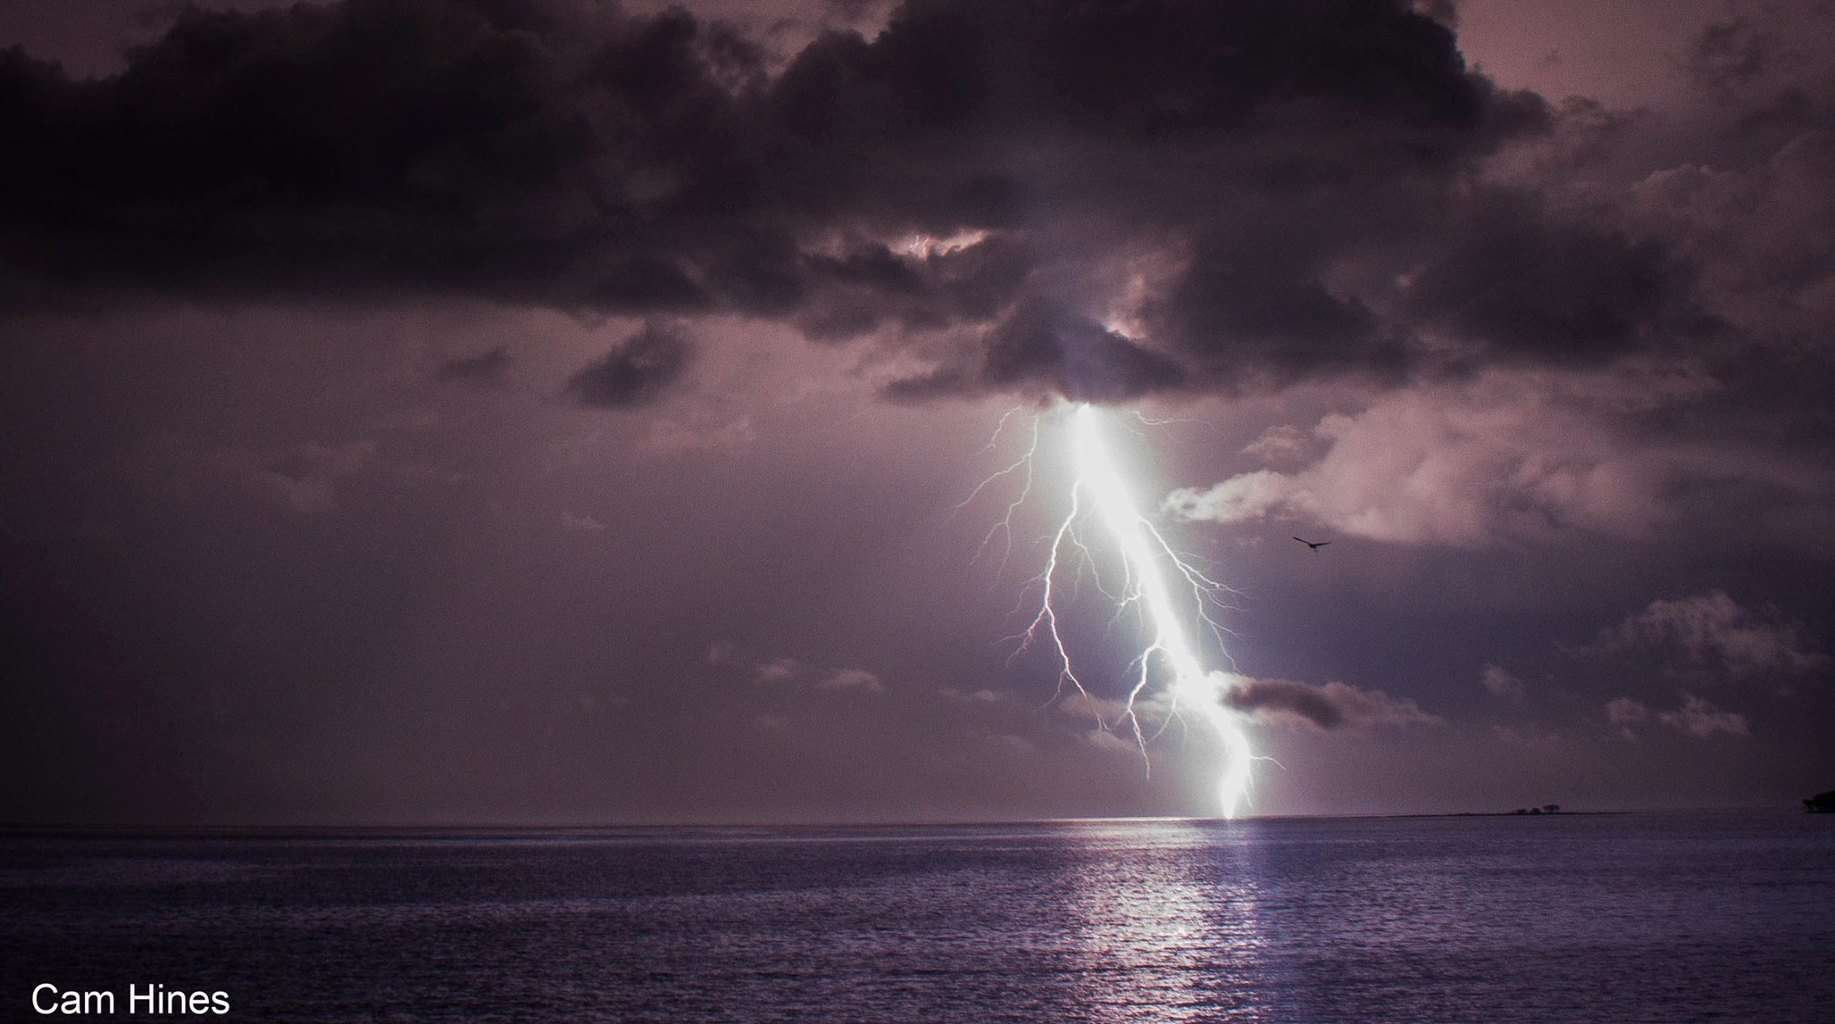 CG lightning hitting the water just offshore from the beach in Cape York, Australia on December 30 last year.